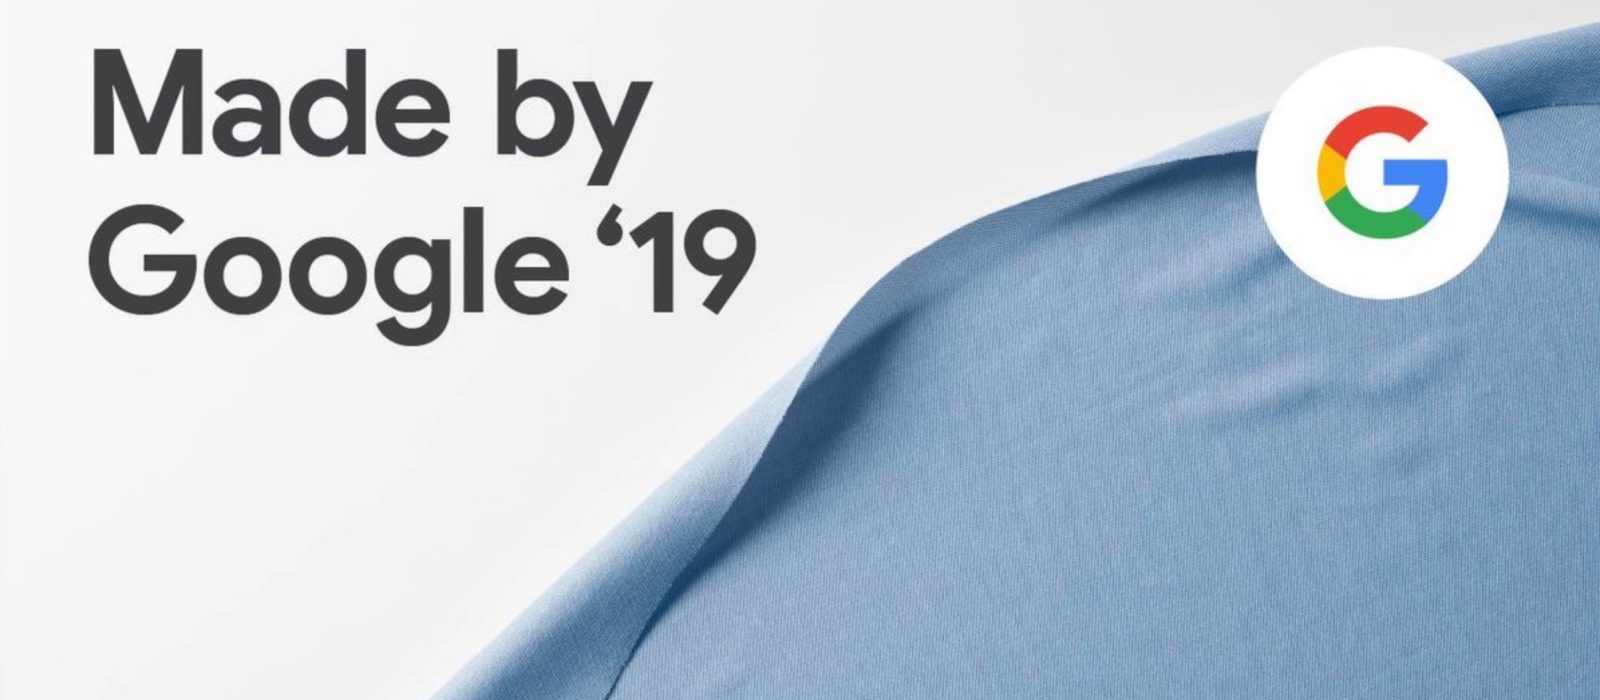 4 of the Biggest Takeaways from Made by Google 2019